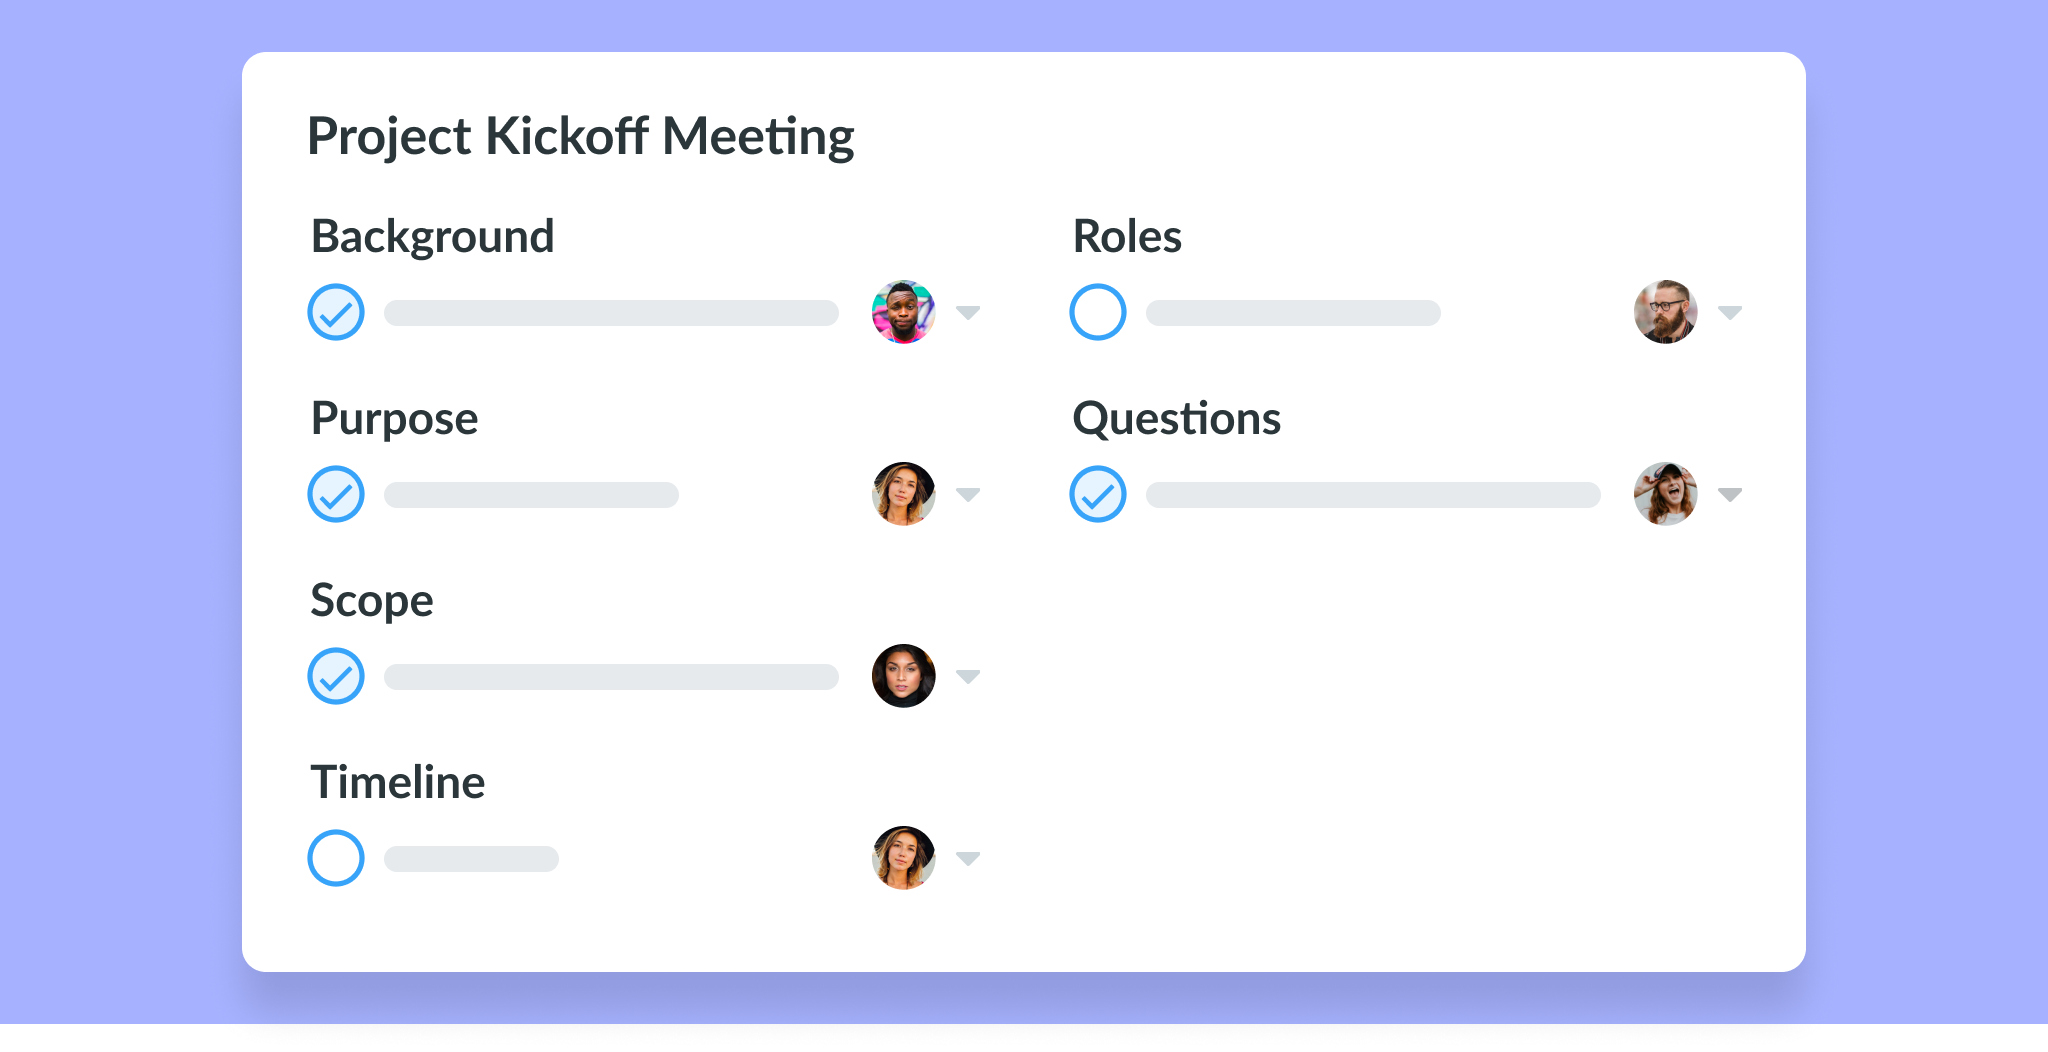 10 Meeting Agenda Templates For Highly Productive Meetings By Fellow App Fellow App What Great Managers Know Medium